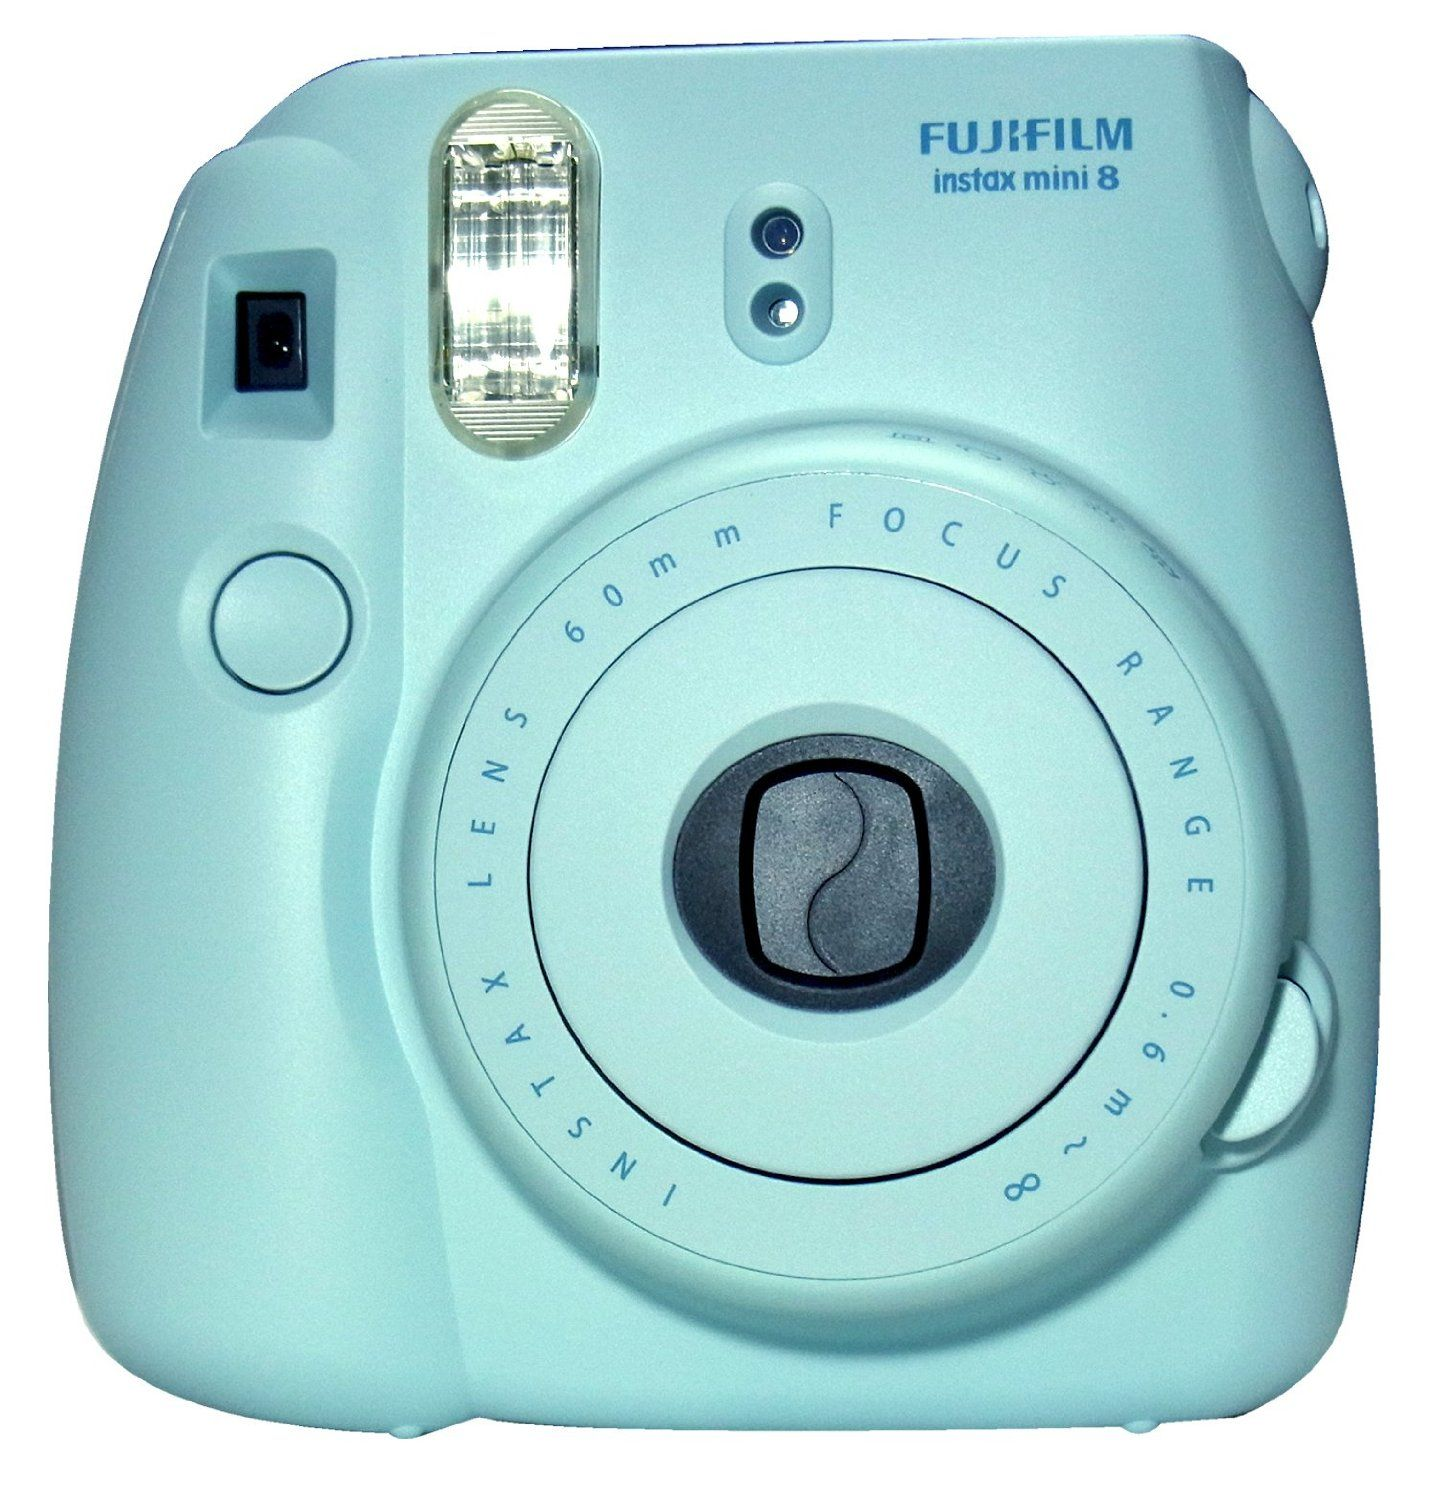 Amazon.com : New Model Fuji Instax 8 Color Blue Fujifilm Instax Mini 8 Instant Camera : Instant Film Cameras : Electronics